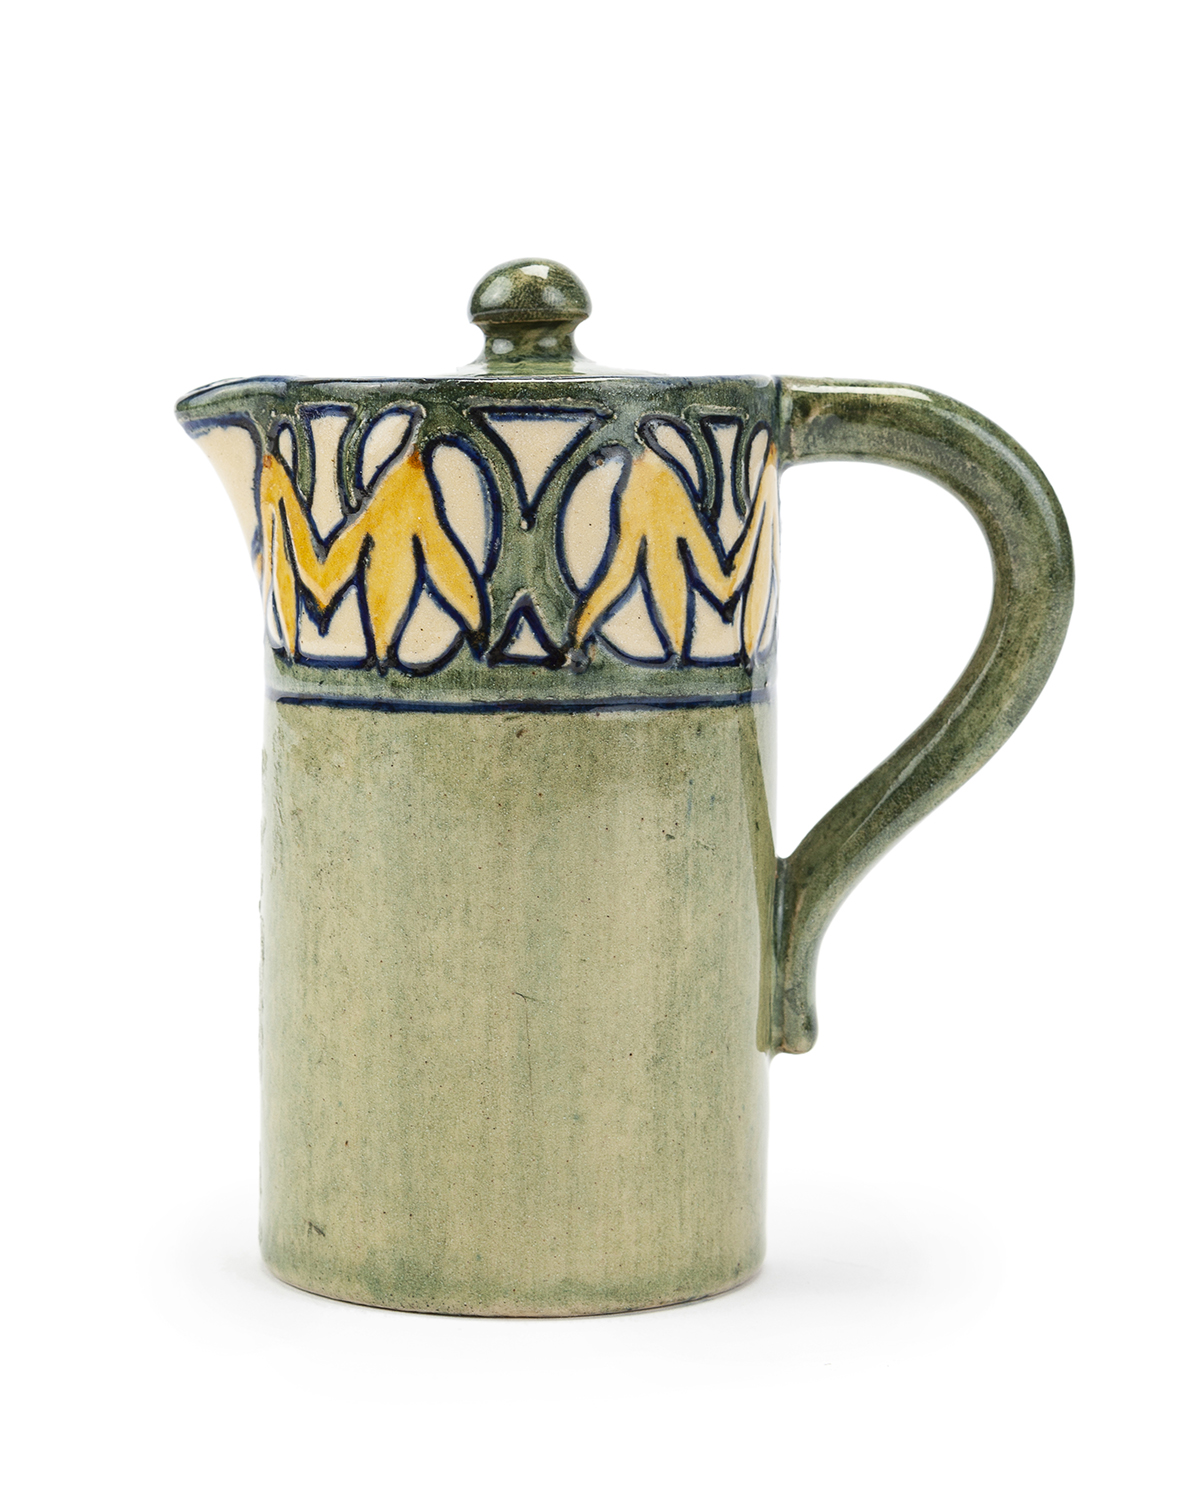 A Newcomb College lidded cream pitcher